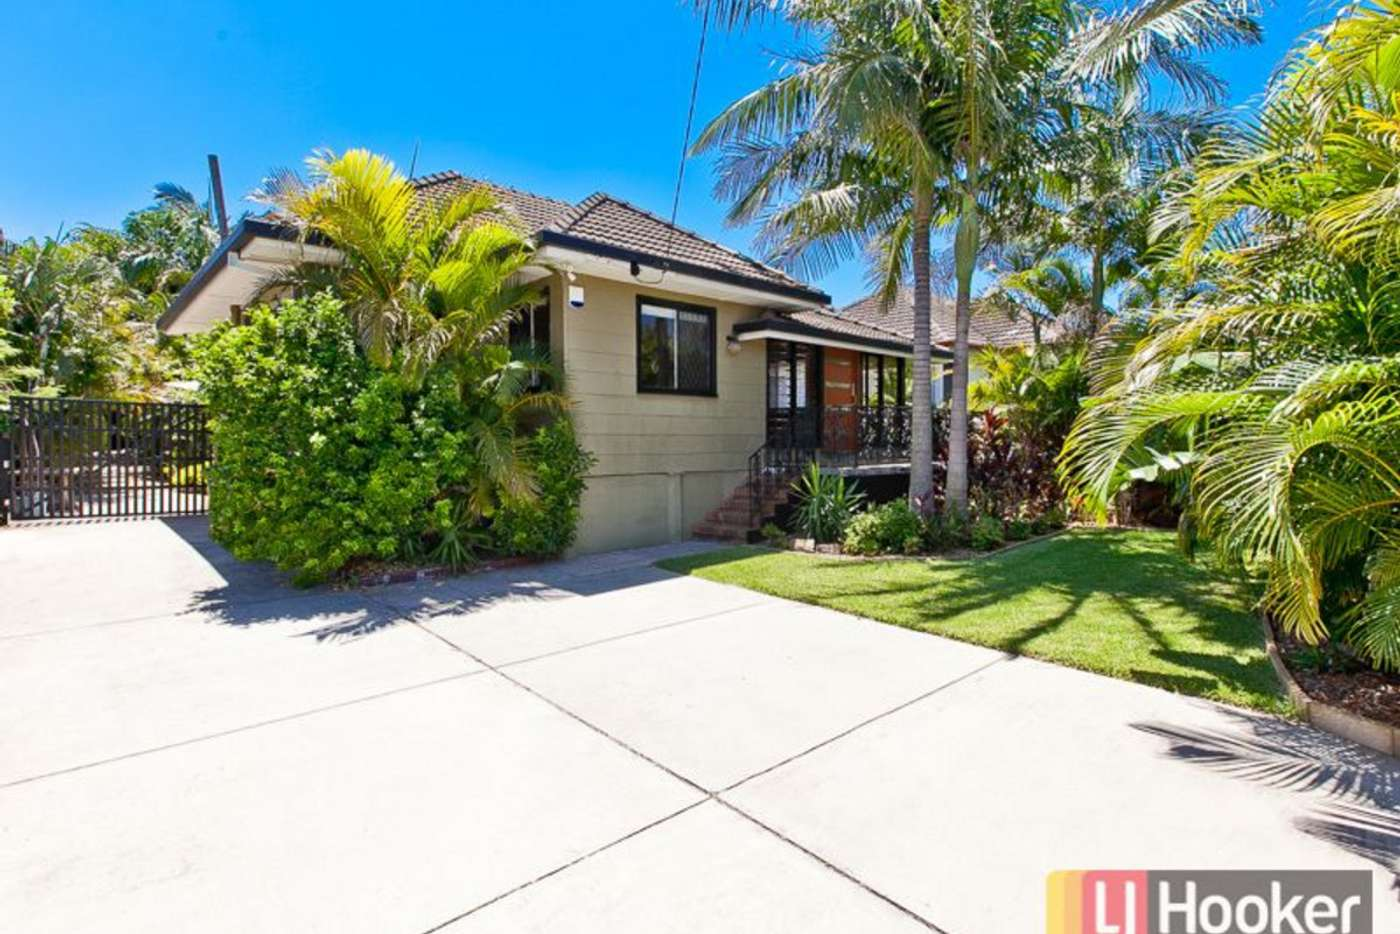 Main view of Homely house listing, 40 Halcomb Street, Zillmere QLD 4034